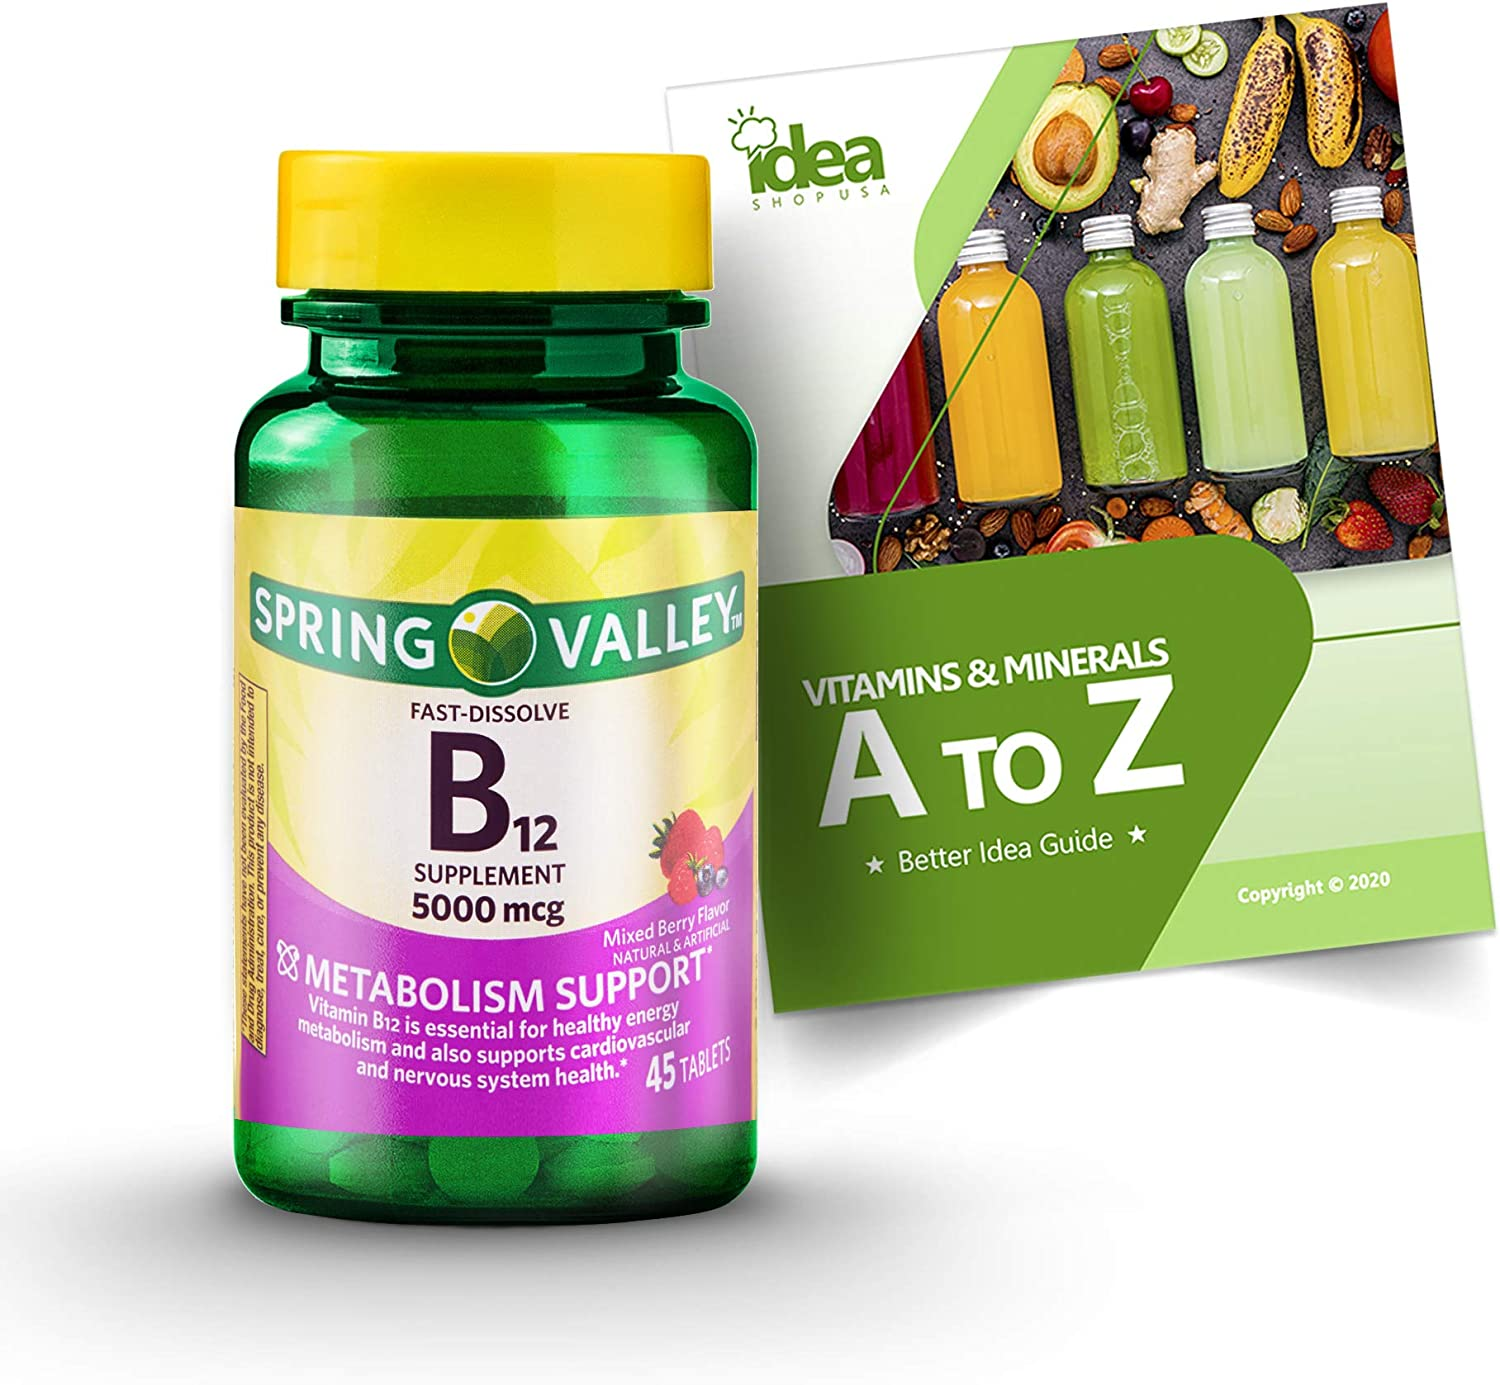 Vitamin Luxury goods B12 Fast Dissolve Large discharge sale Tablets by Valley Spring mcg à + 5000